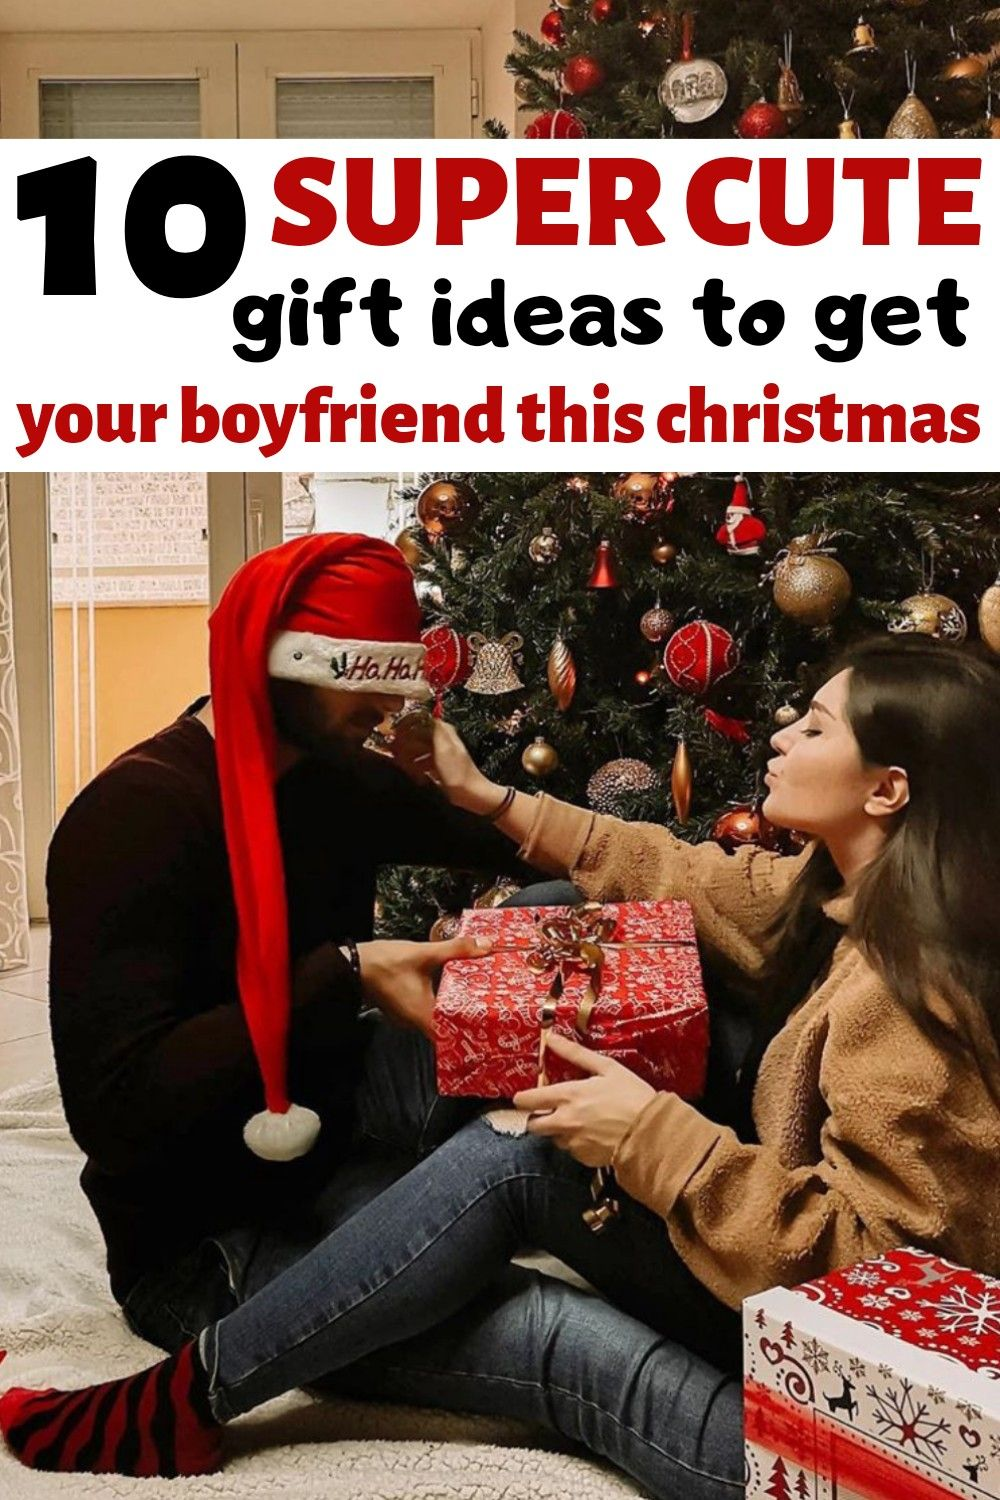 23 Special Christmas Gifts Ideas For Your Boyfriend Christmas Gifts For Boyfriend Boyfriend Gifts Cute Boyfriend Gifts